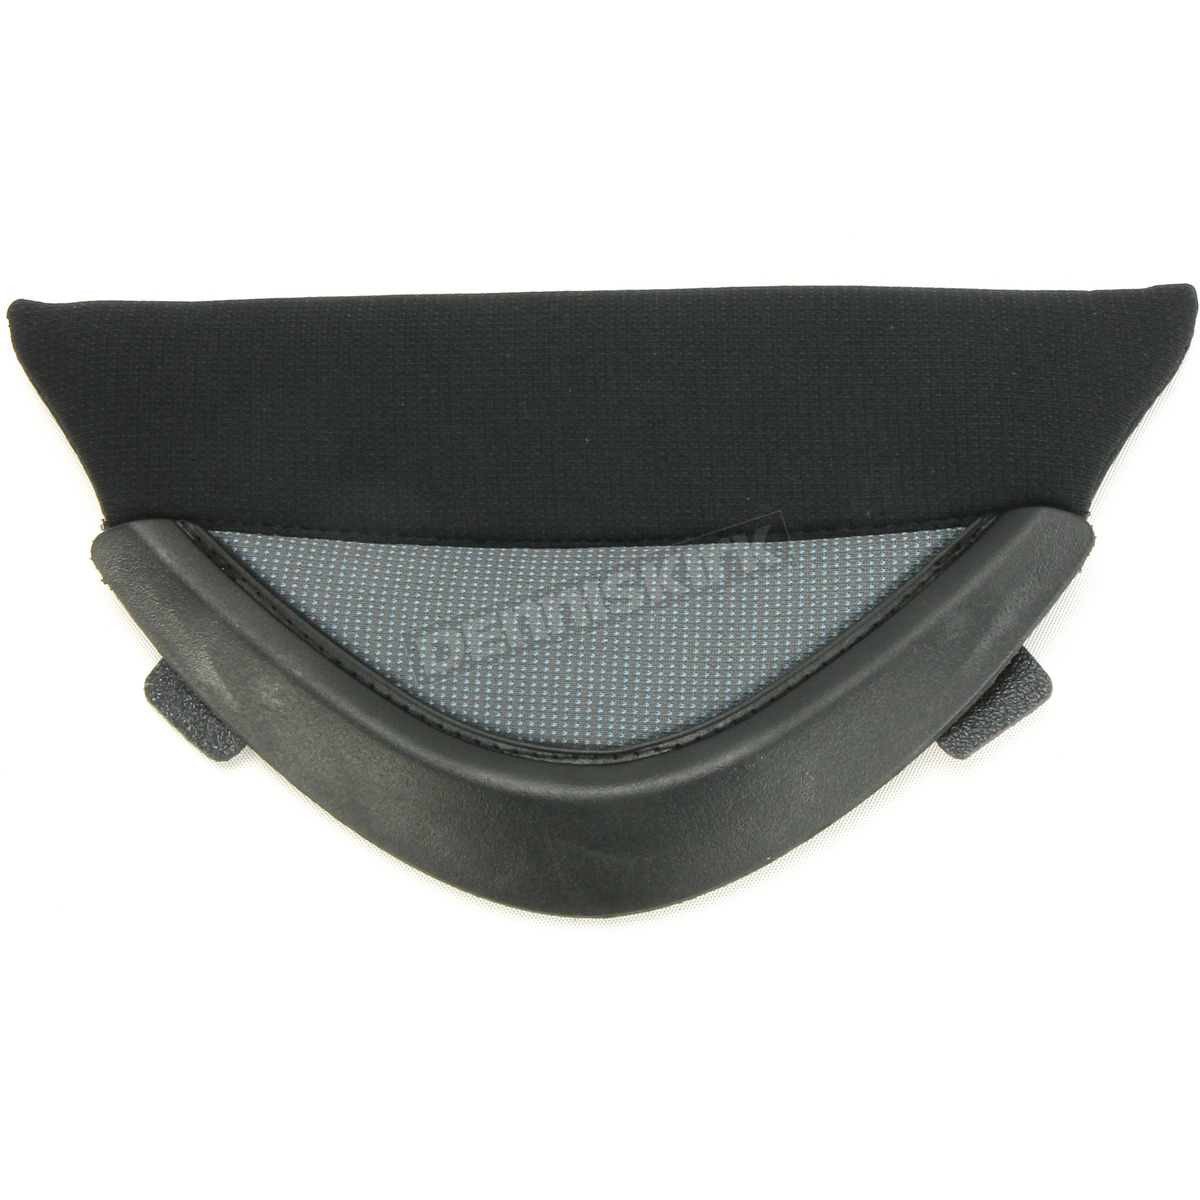 Black Chin Curtain for MD01 Snow Helmets - G001020